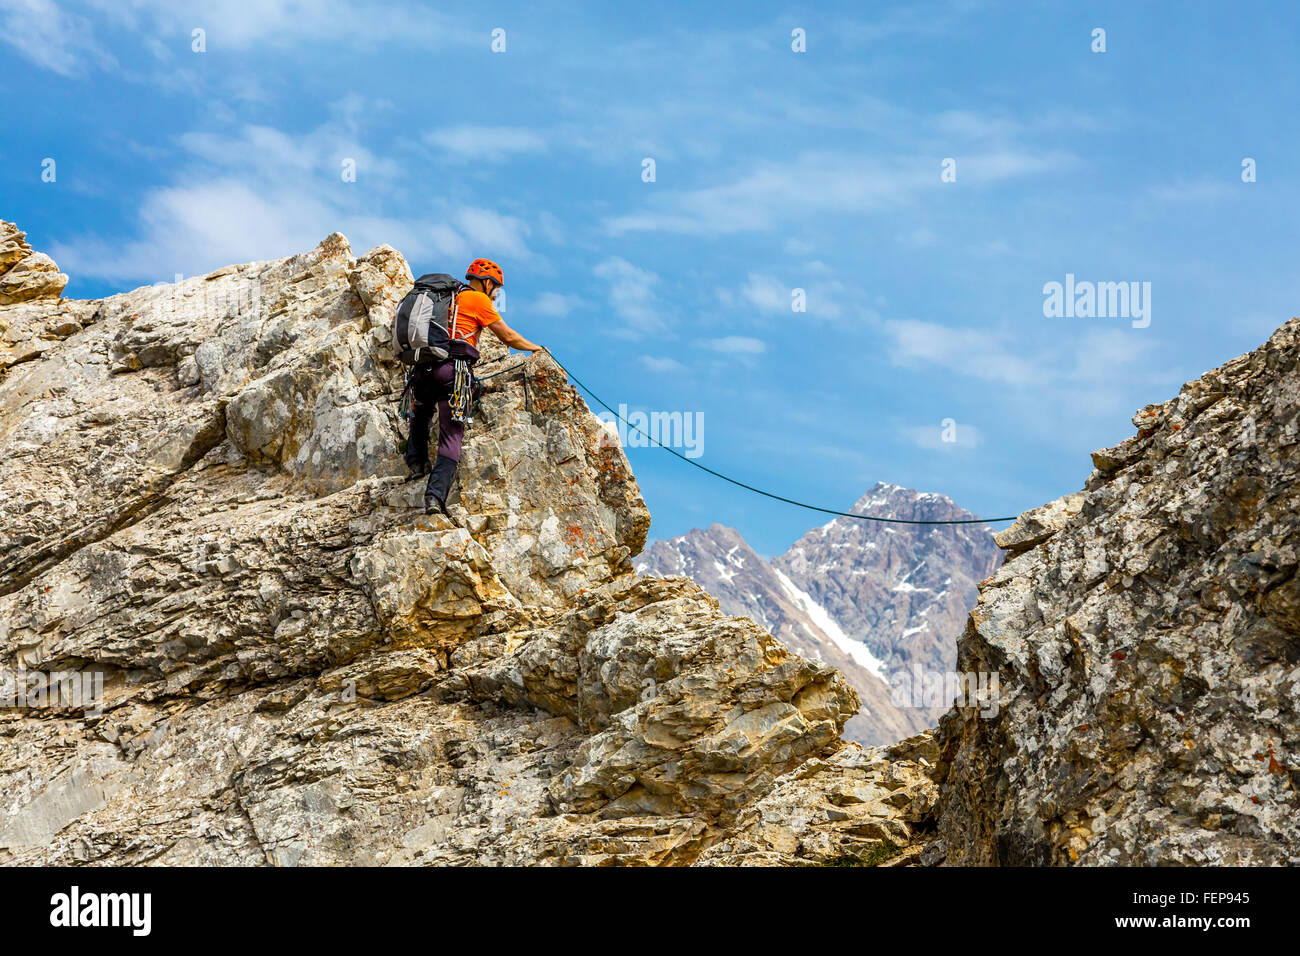 Brave man climbs rocky ridge - Stock Image